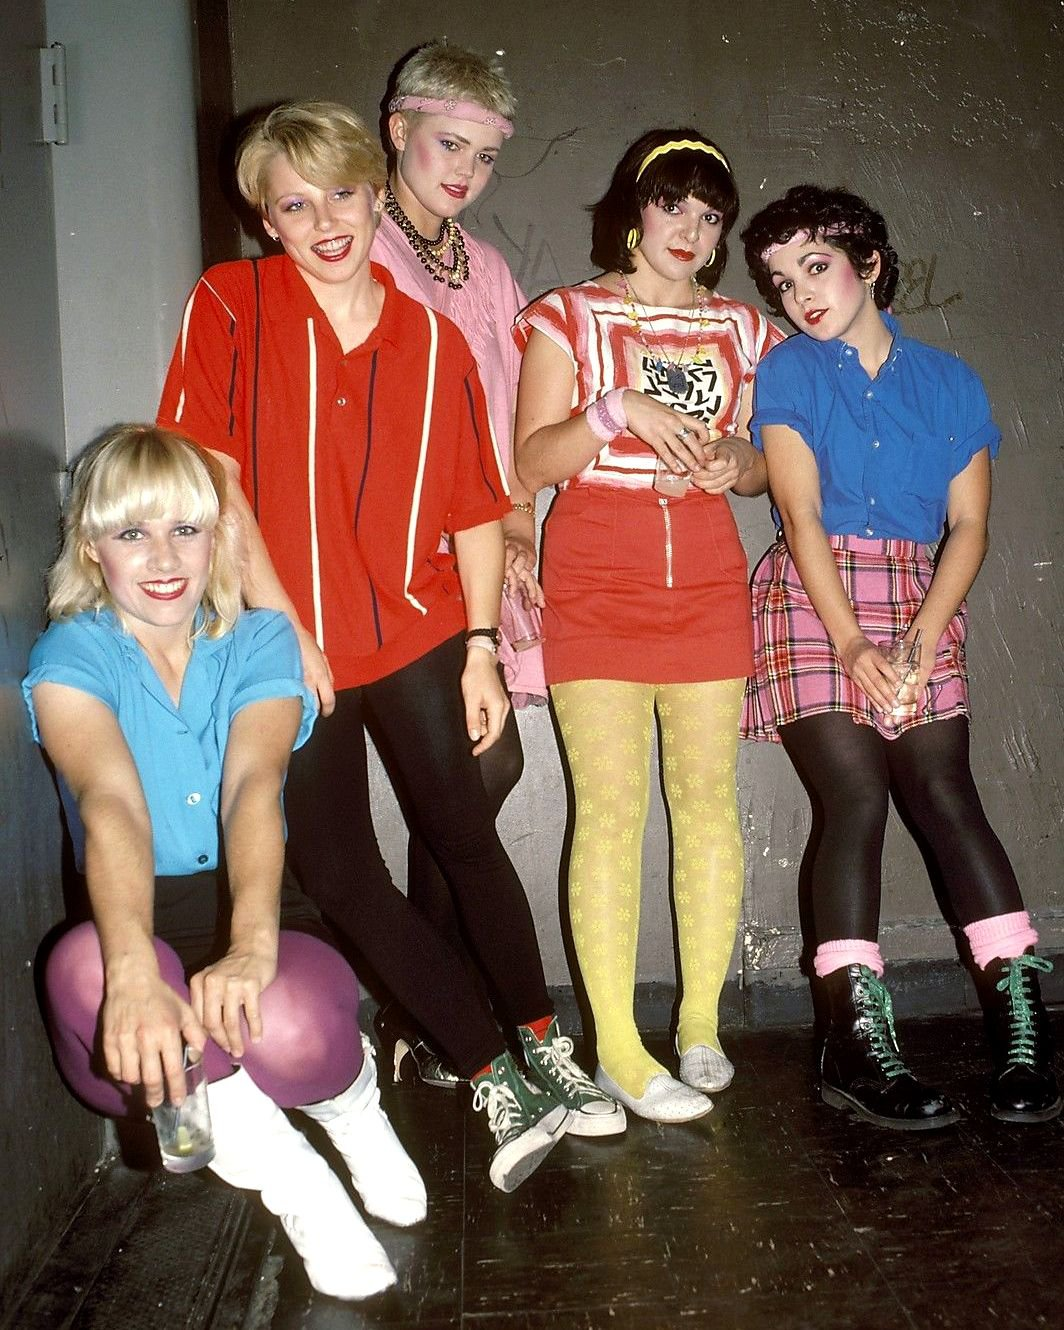 THE GO-GO's 1980s POP ROCK BAND